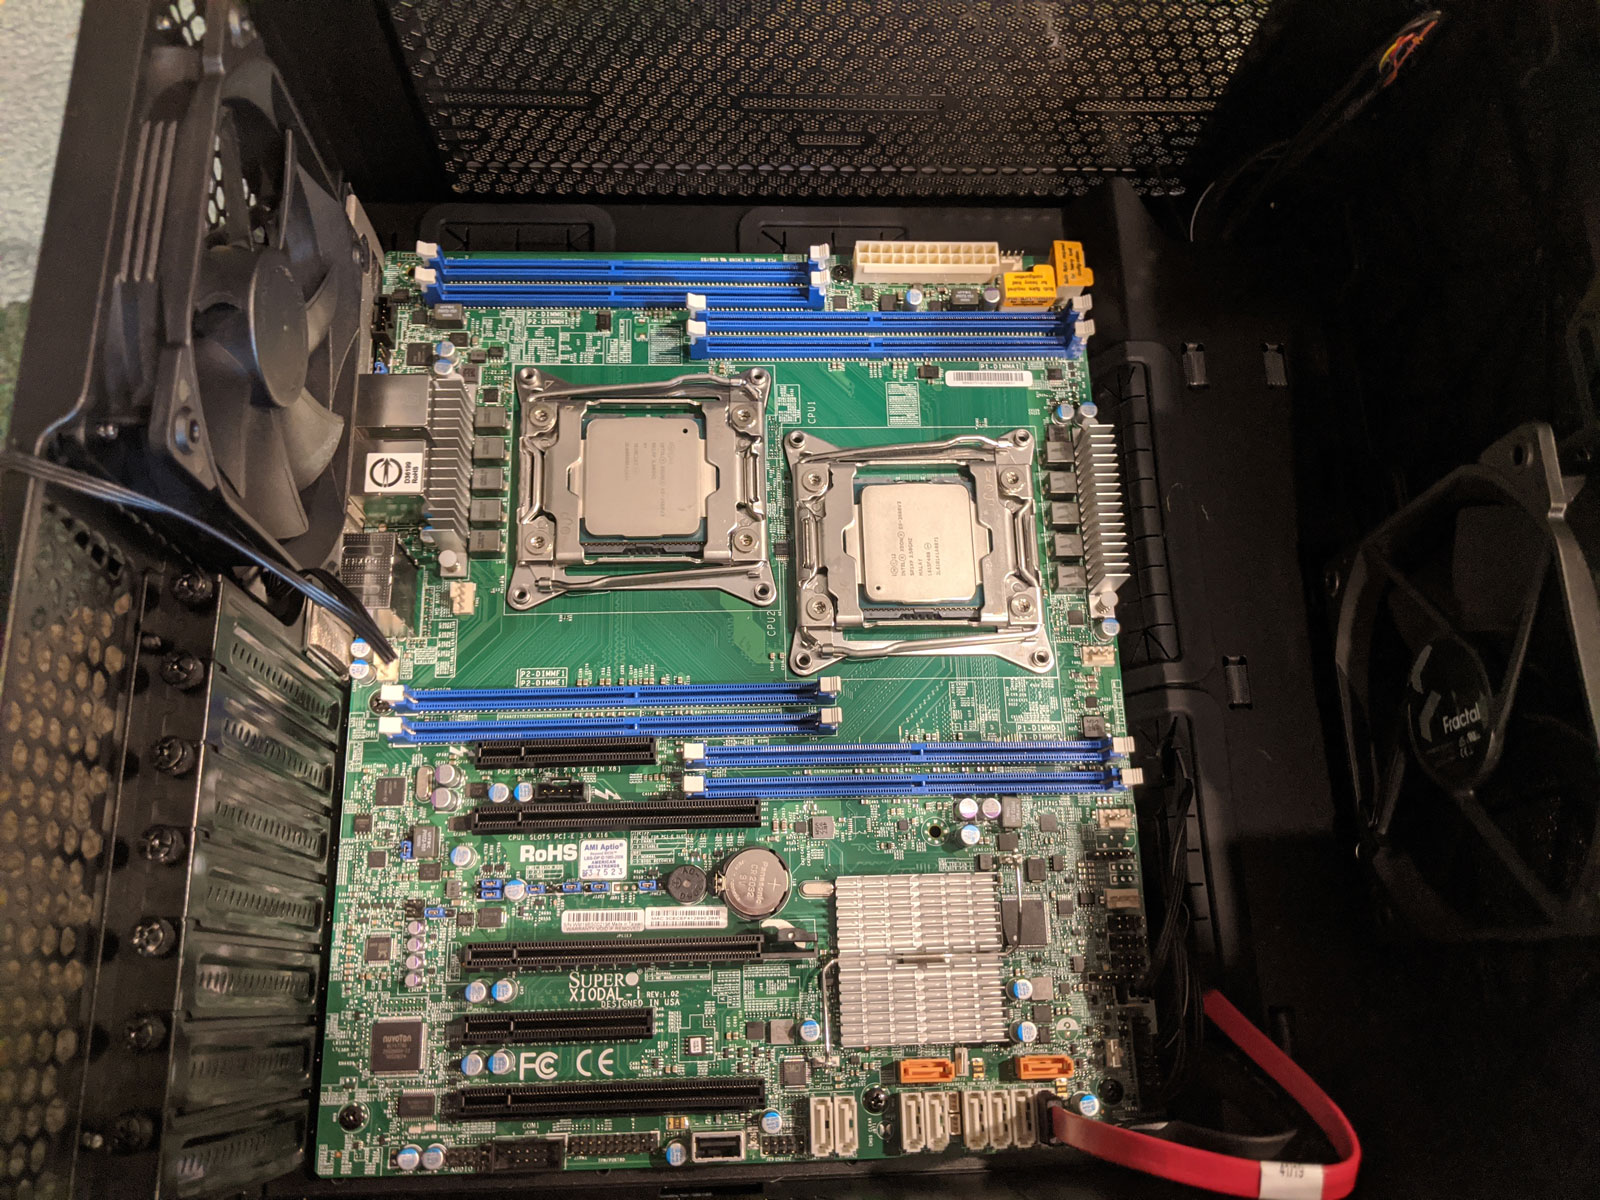 Photo of motherboard with CPUs installed